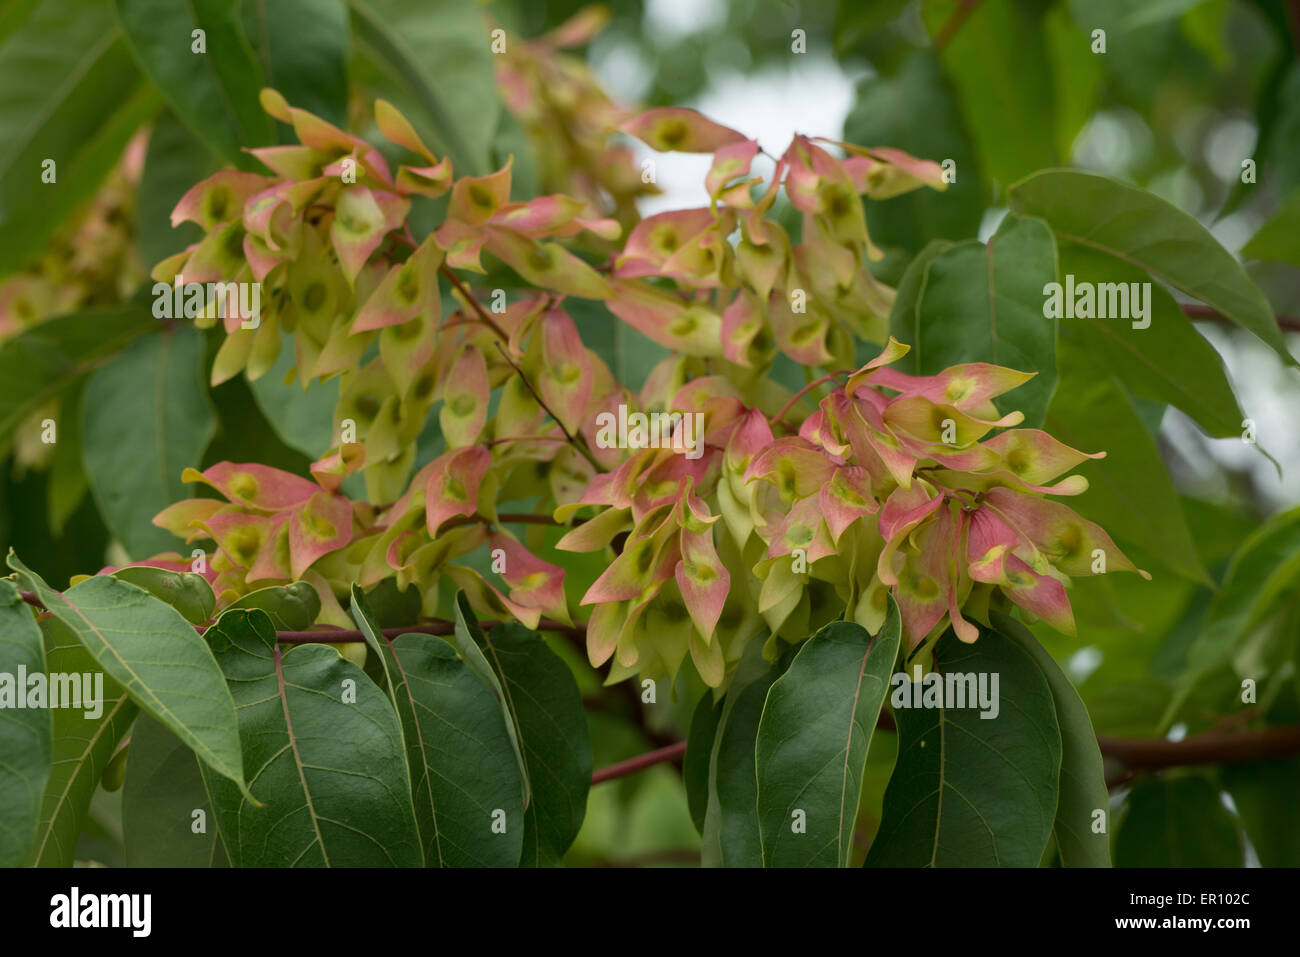 Ailanthus altissima is an invasive plant species to Europe, seriously harming local vegetation, Spain - Stock Image